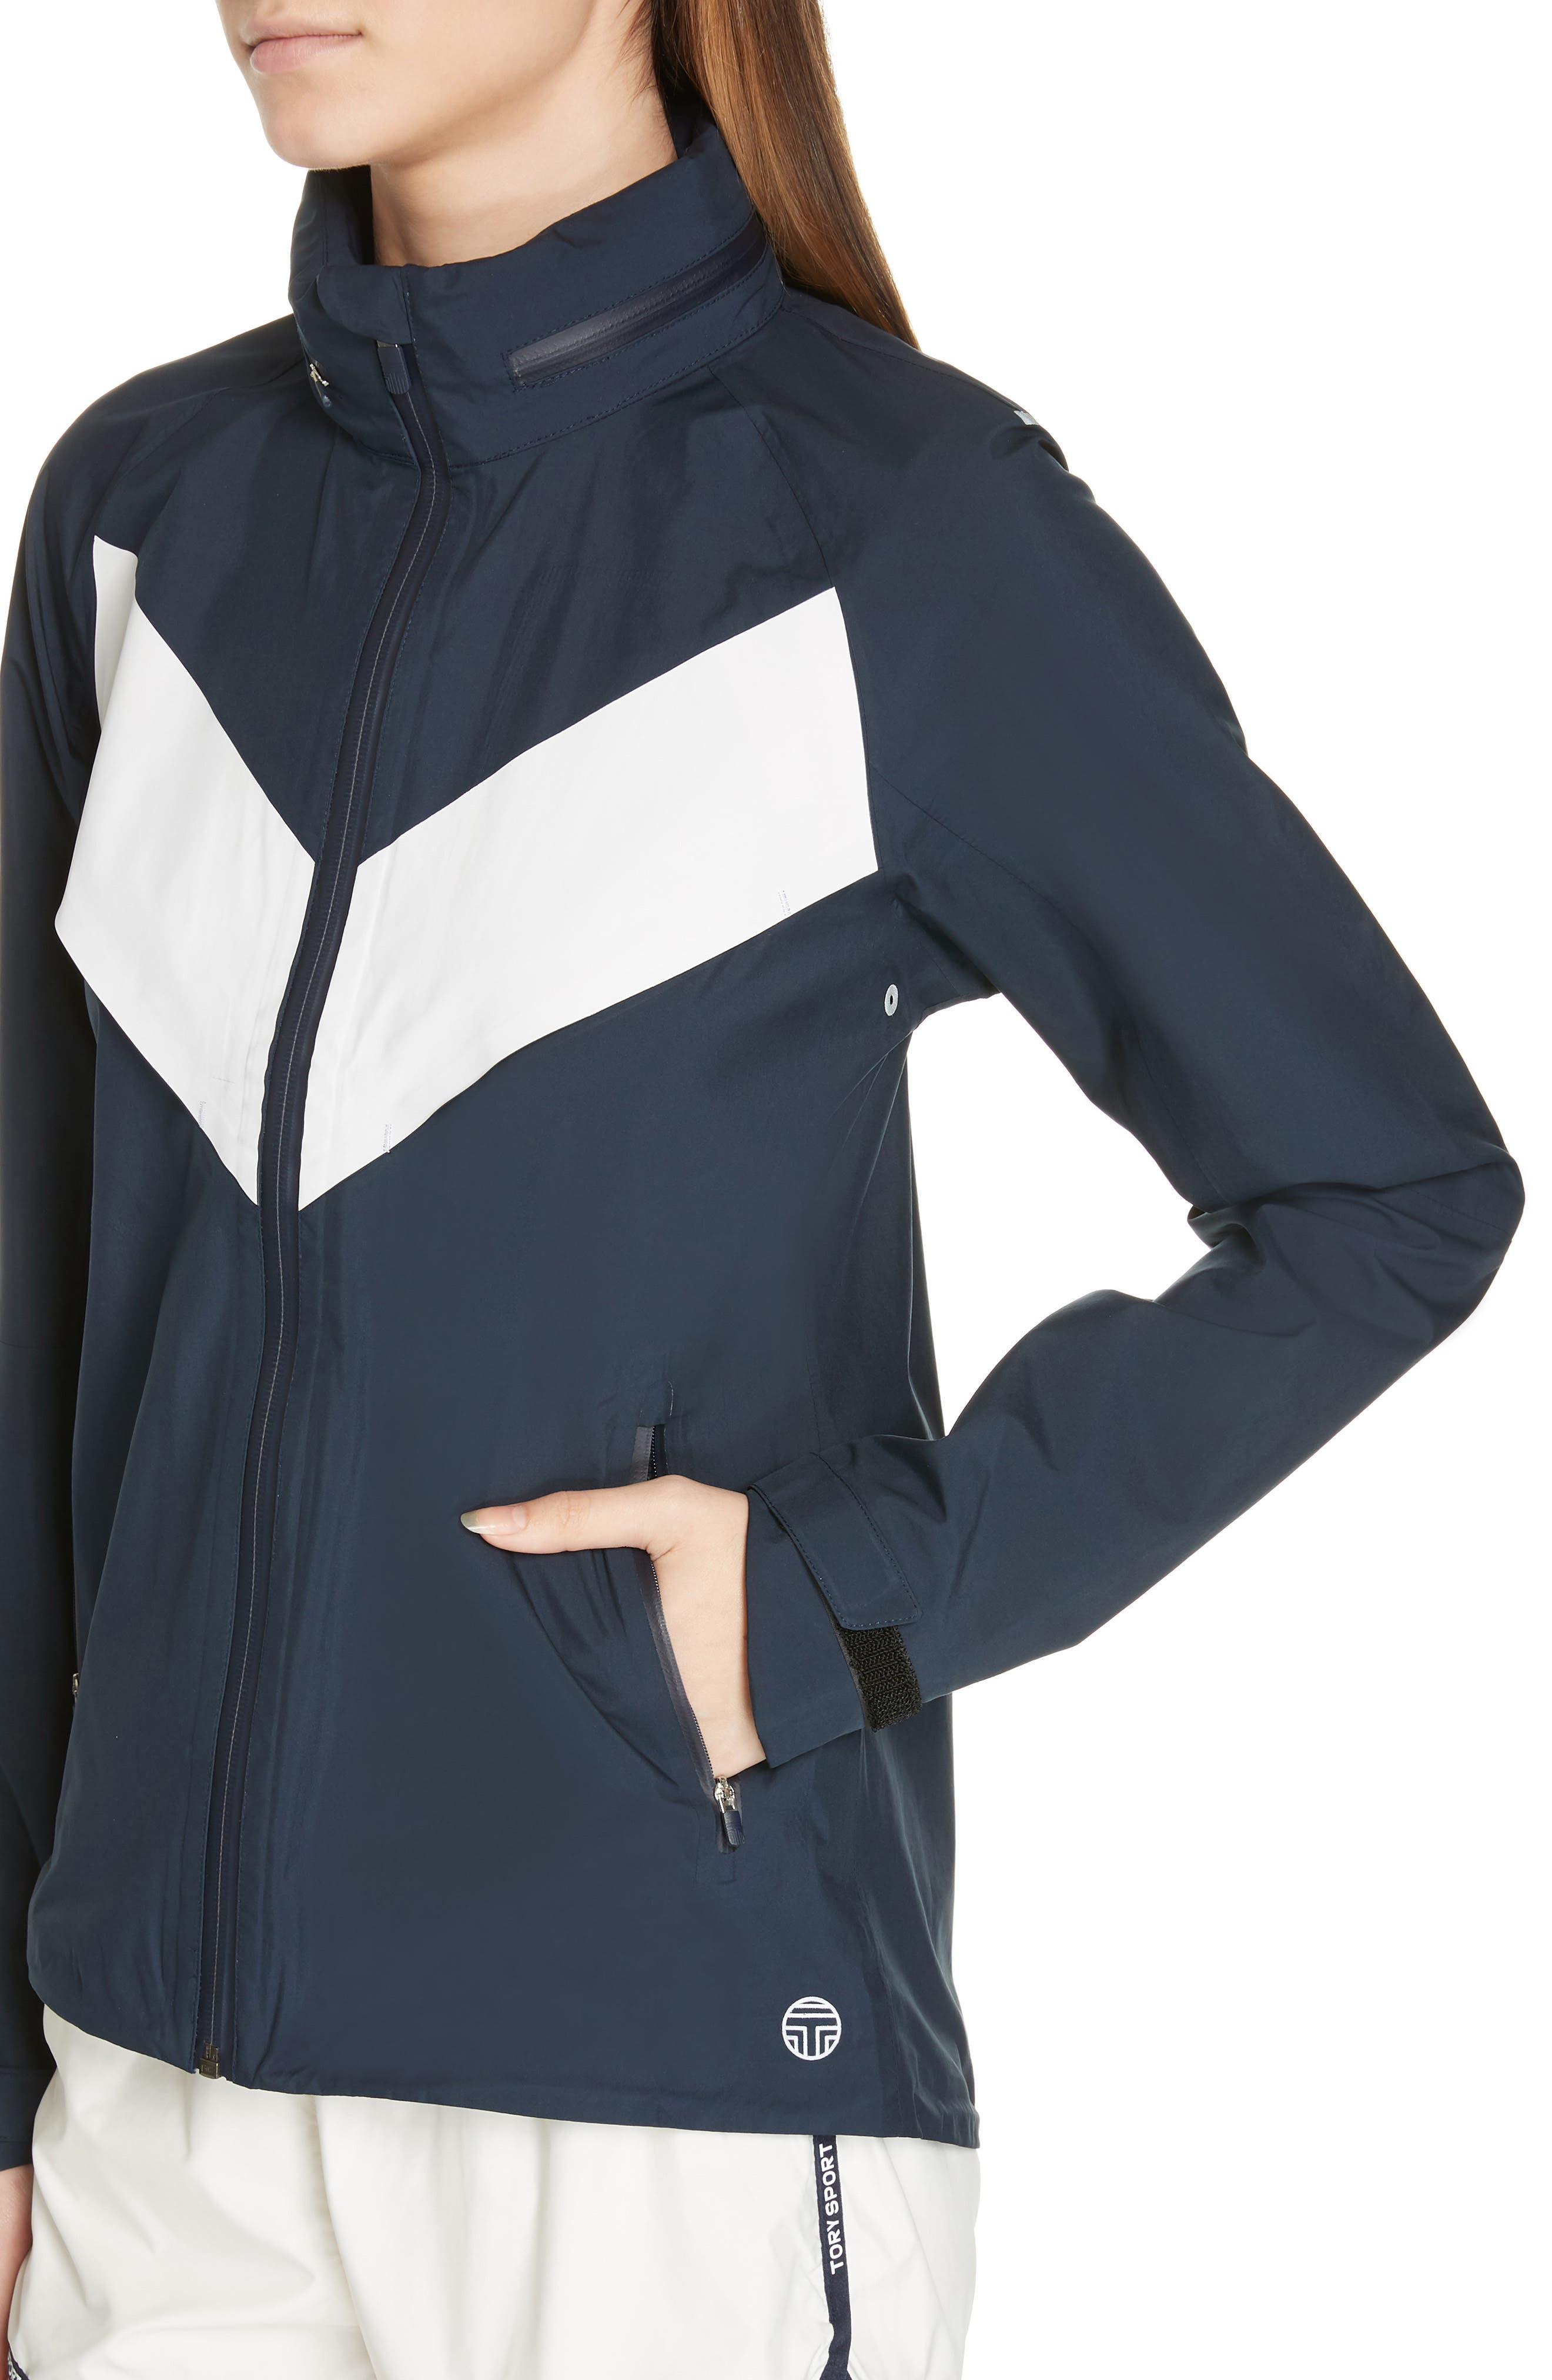 TORY SPORT, All Weather Run Jacket, Alternate thumbnail 5, color, TORY NAVY/ WHITE SNOW